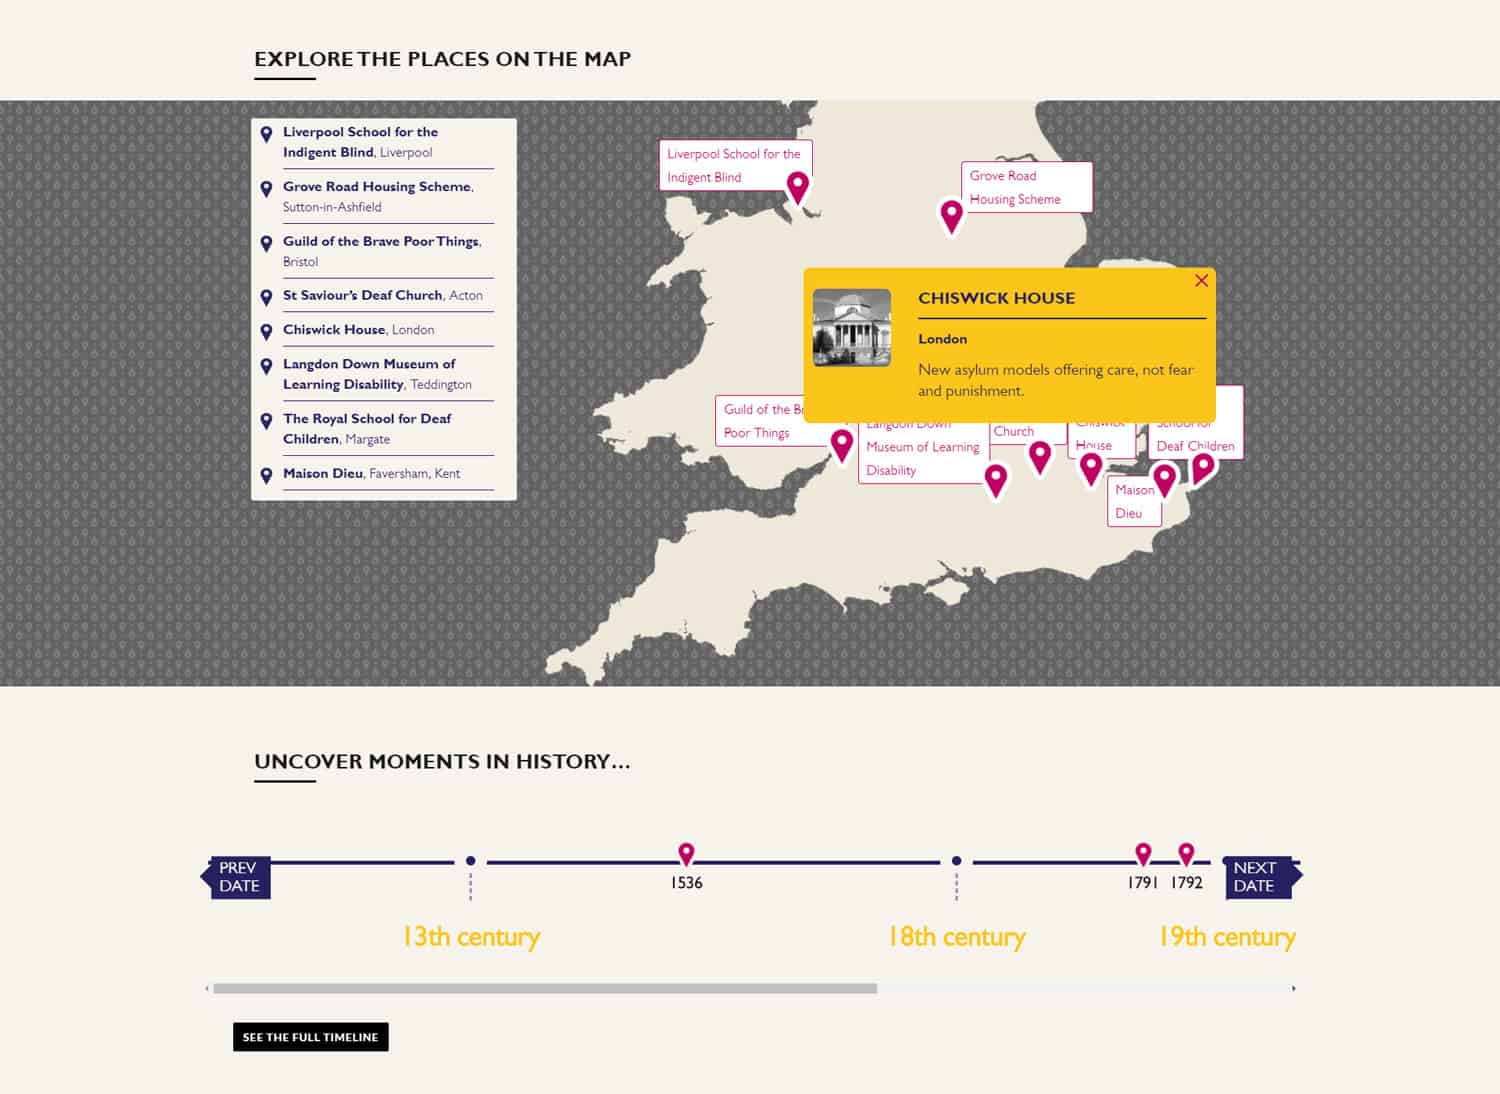 Screenshot of Accentuate online exhibition - interactive map navigation (explore places on the map)